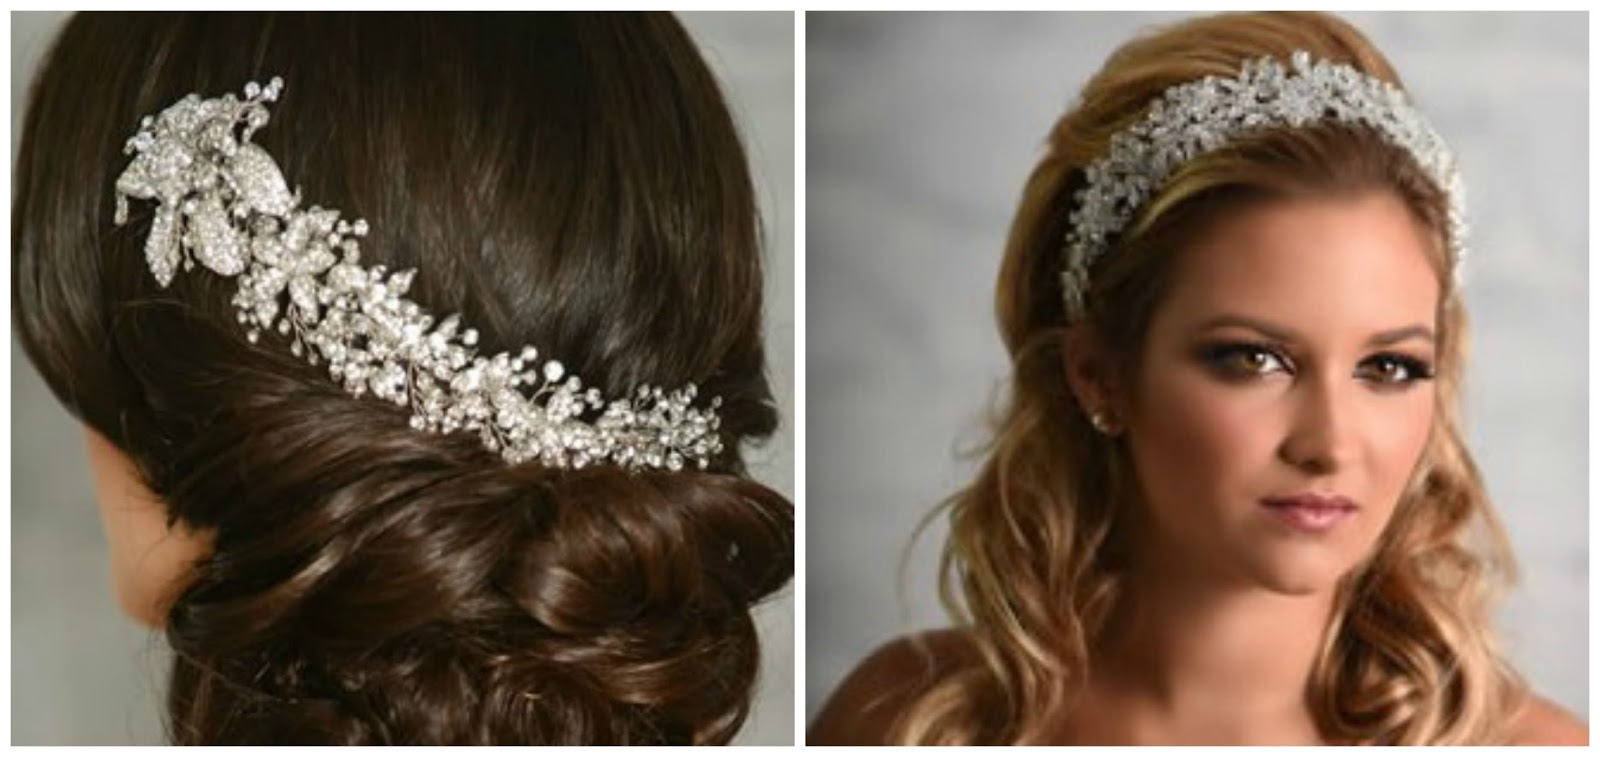 Bridal tiaras and veils - Maritza Bridal Veils Inc Uses Only The Very Best Crystal On Every Piece That They Design Each Custom Piece Brings A Special Elegance To Your Wedding